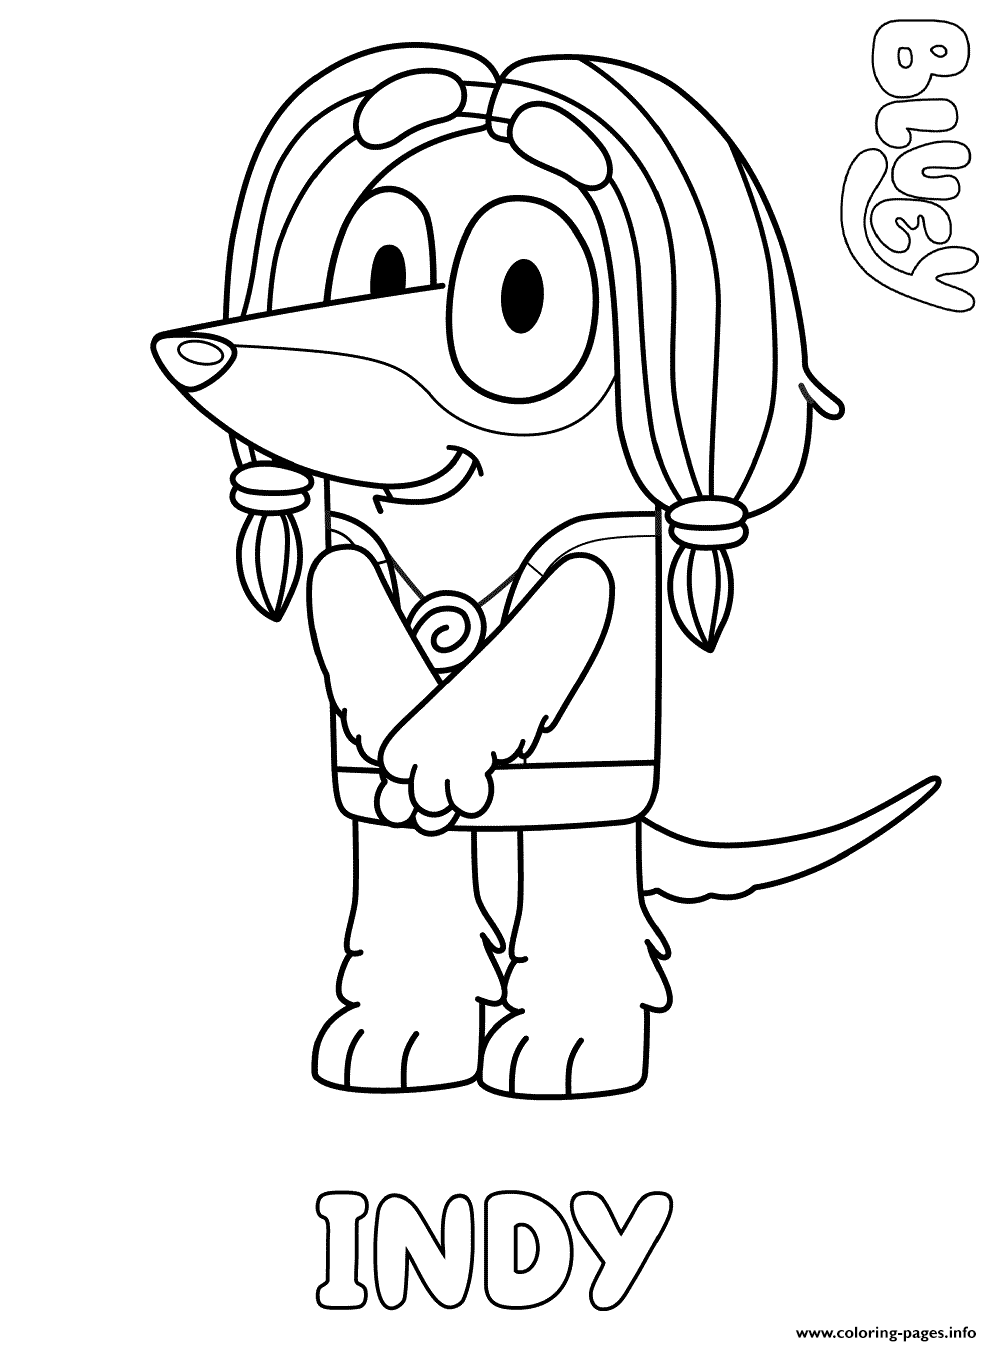 Afghan Hound Indy Coloring Pages Printable